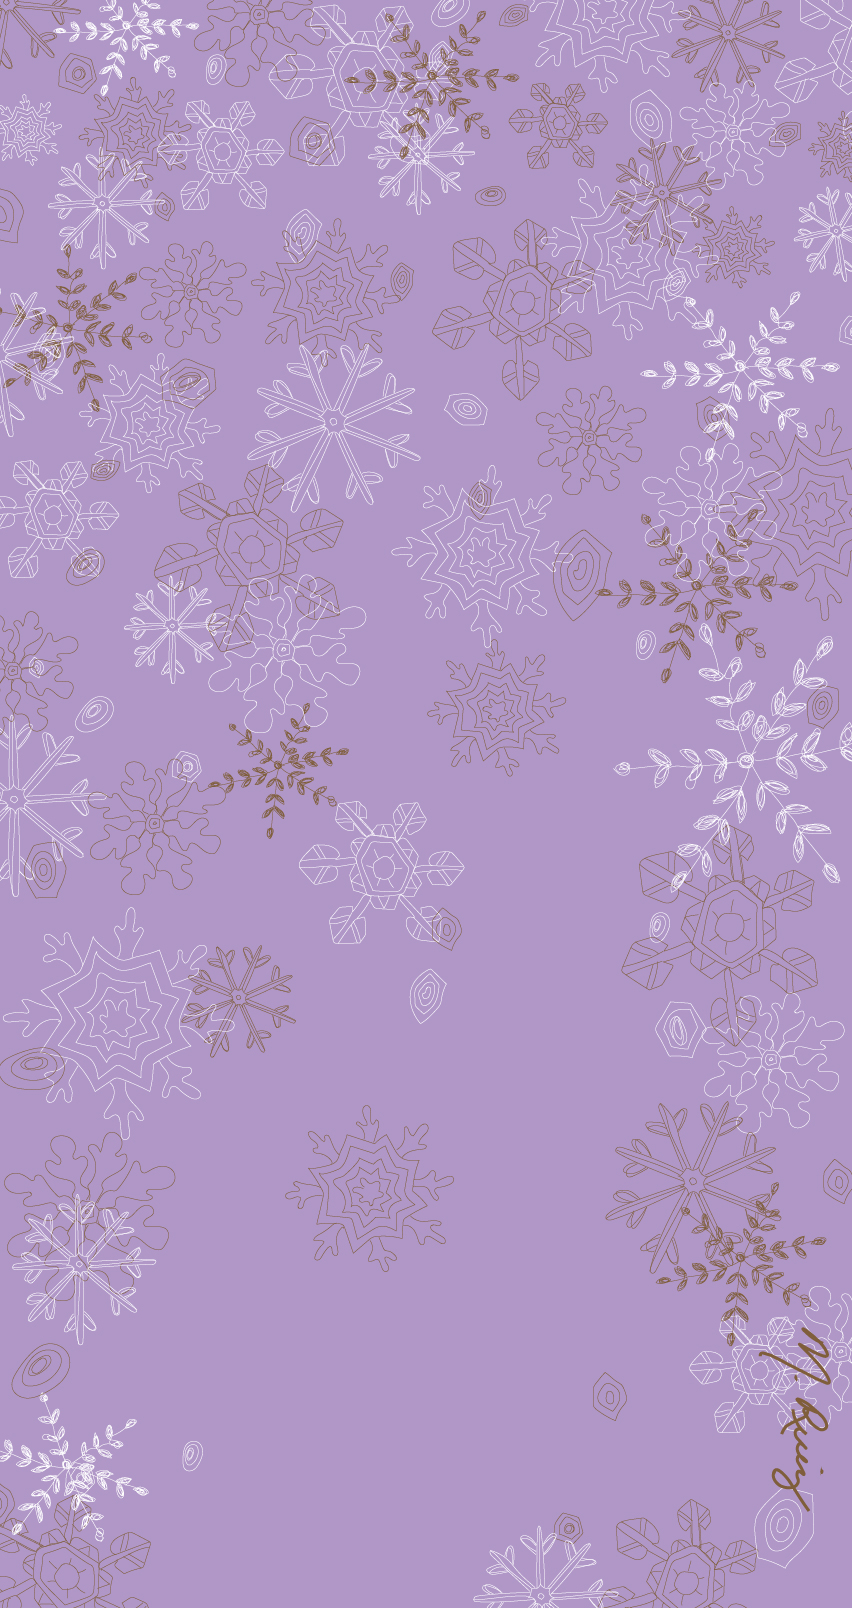 Purple Snowflake Flurry Mobile Wallpaper - 852px x 1608px